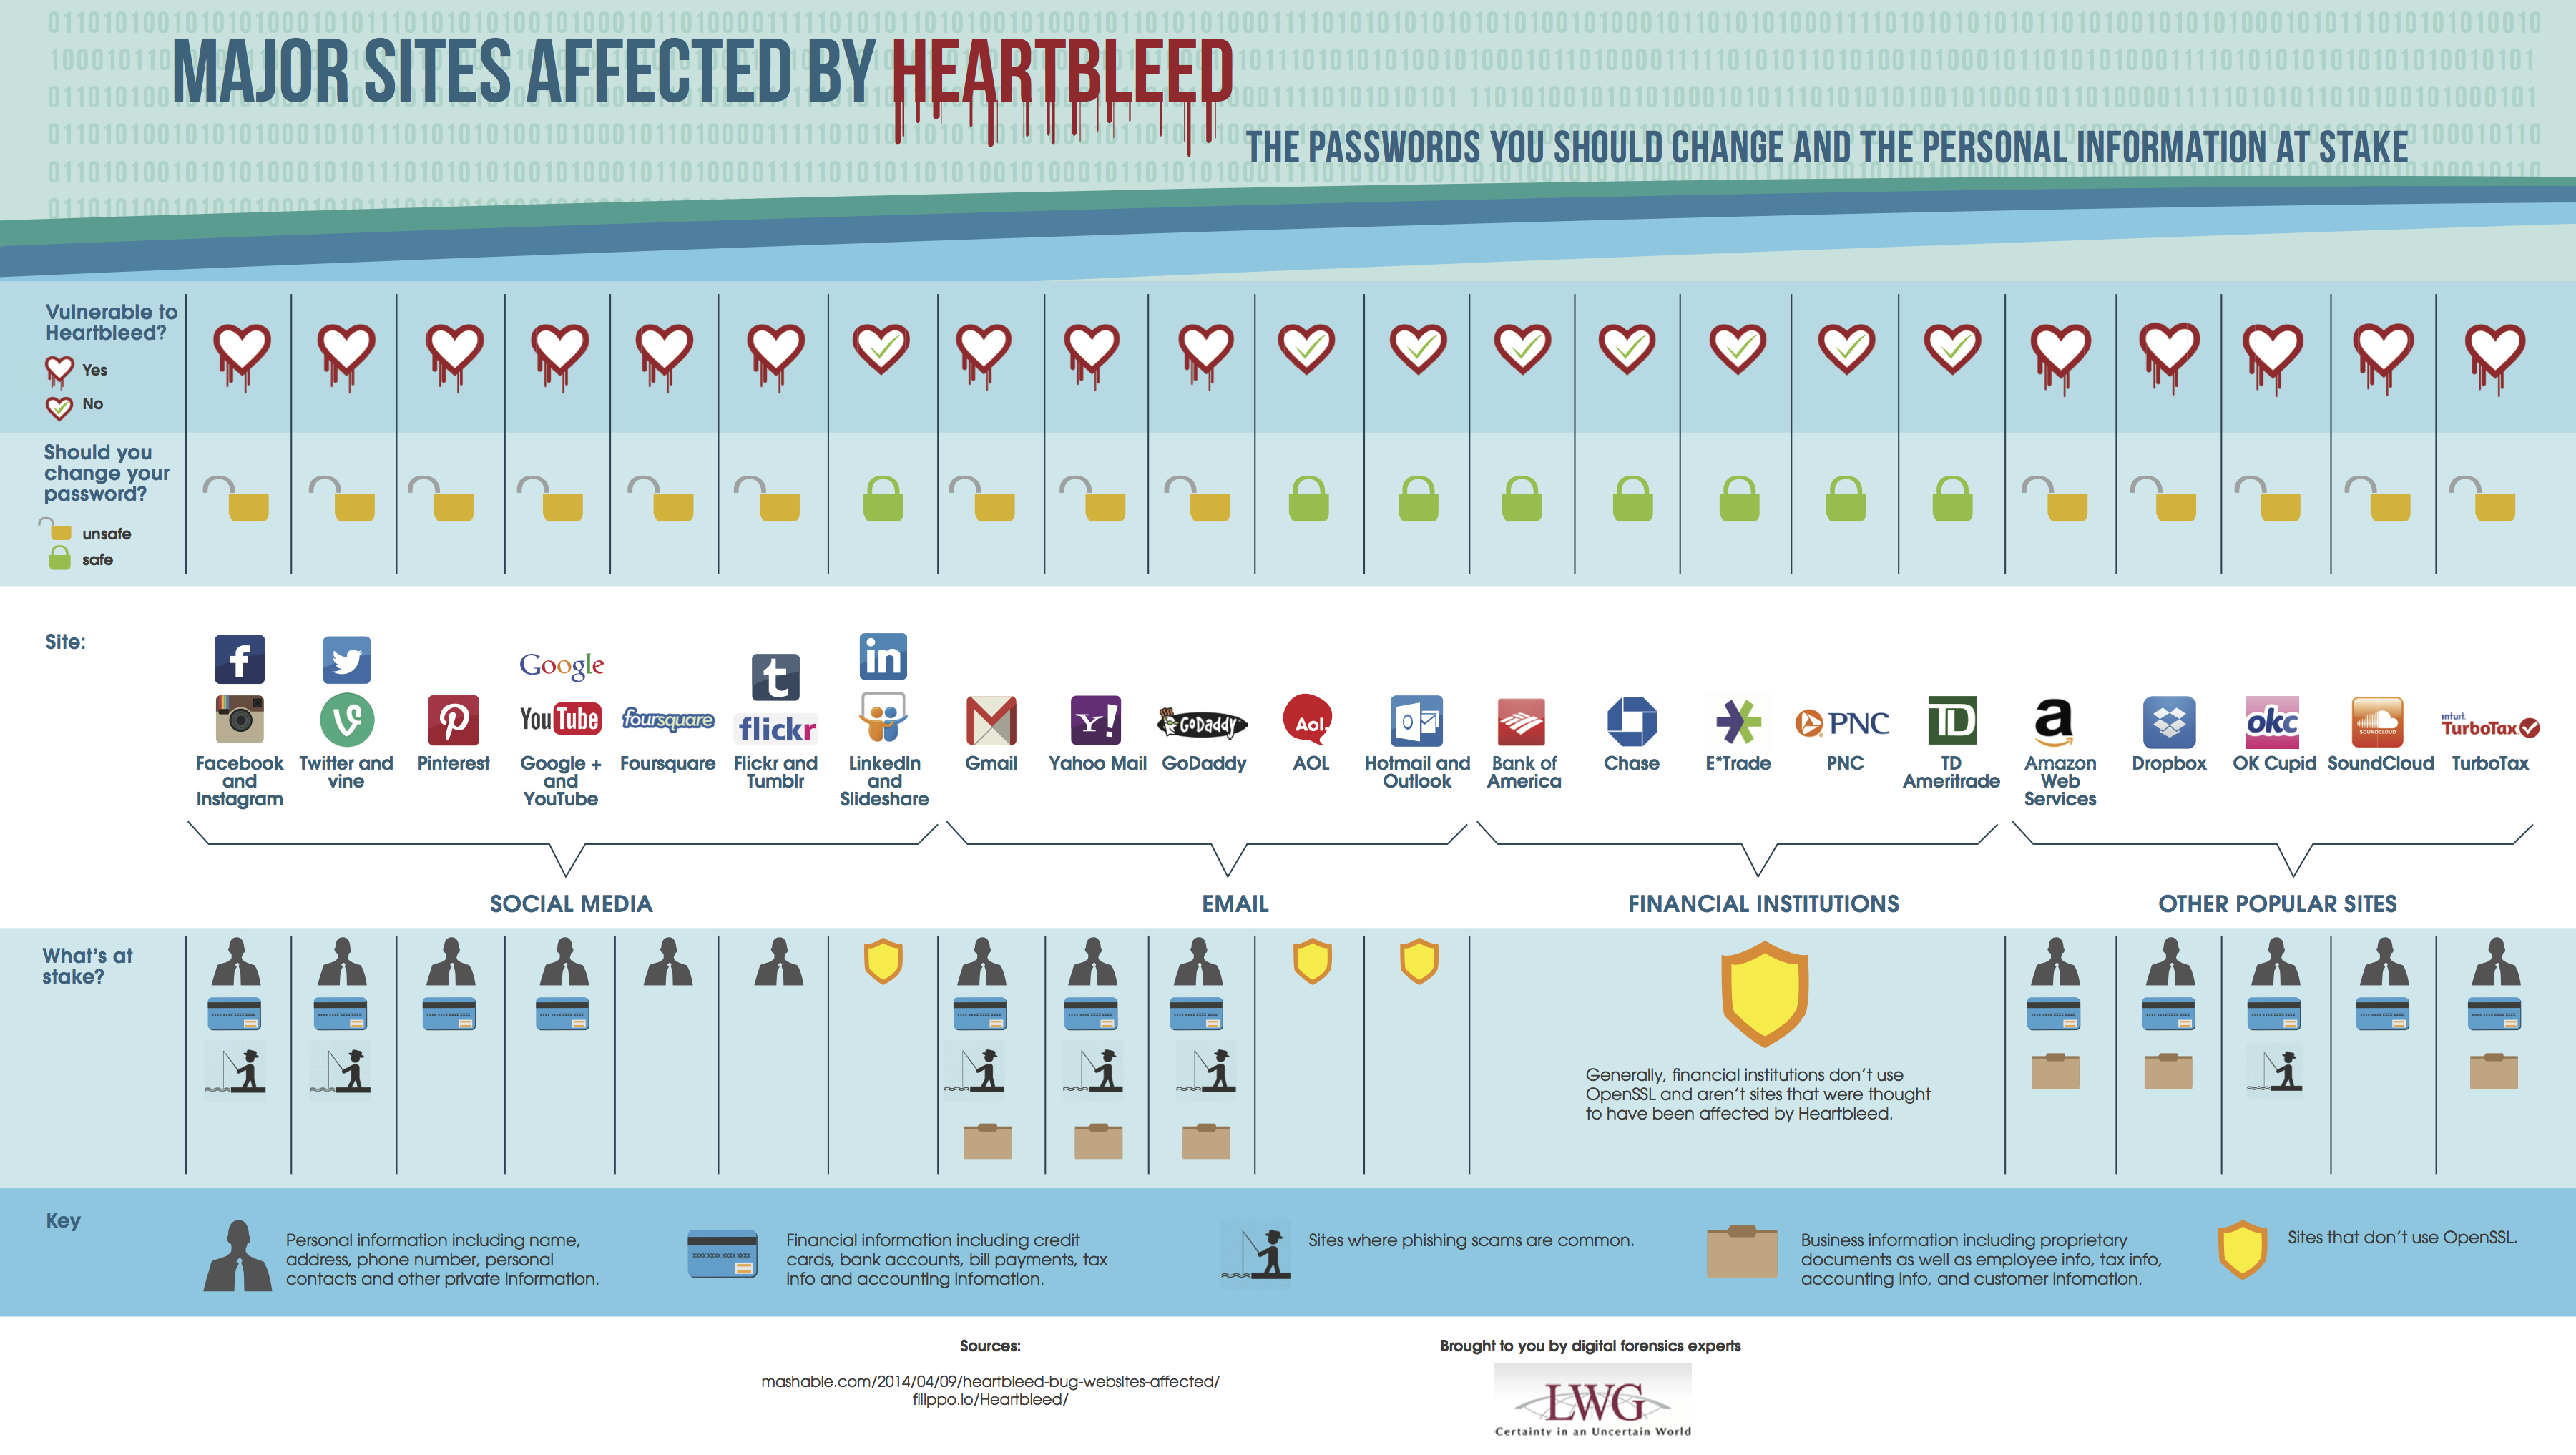 All the passwords you should change because of Heartbleed